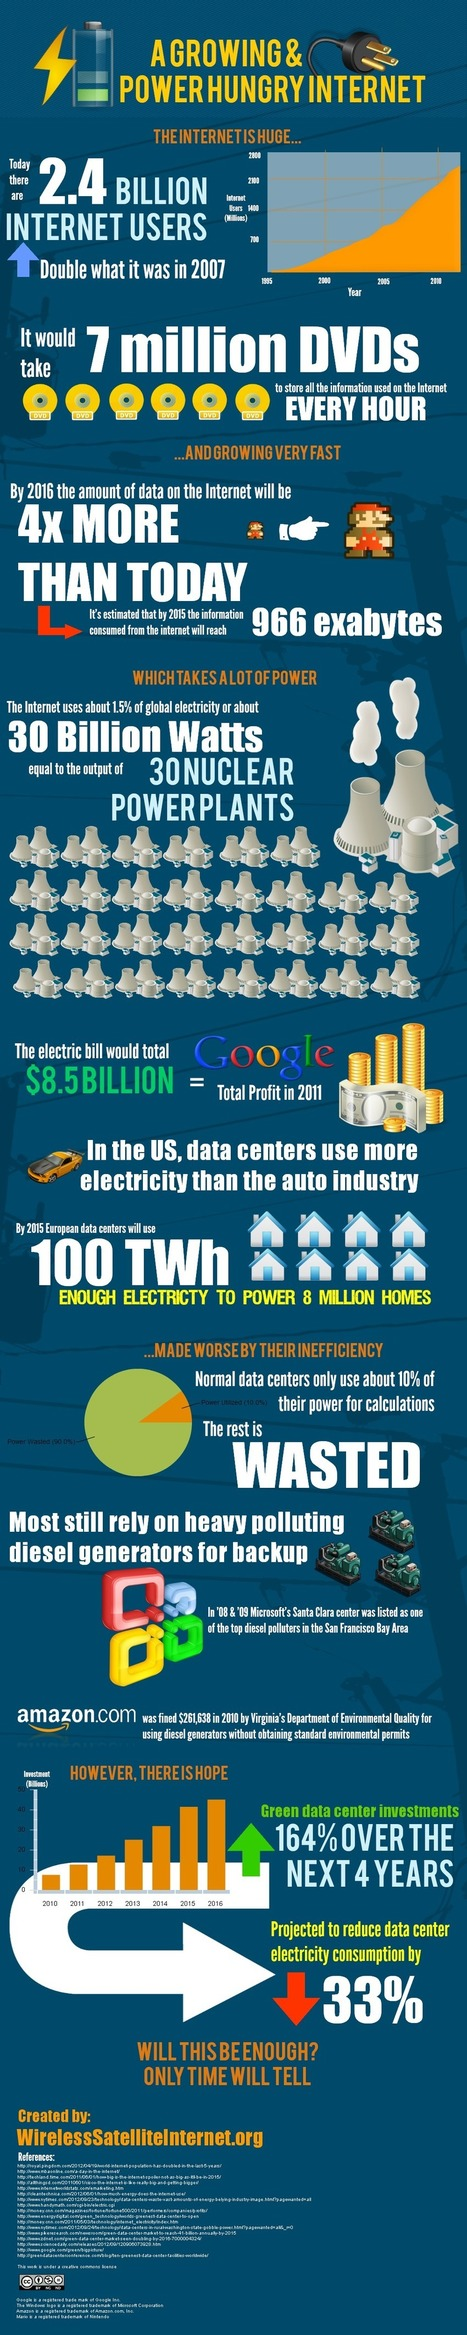 Growing-Power-Hungry-Internet.png (1000x5000 pixels) | RSO | Scoop.it